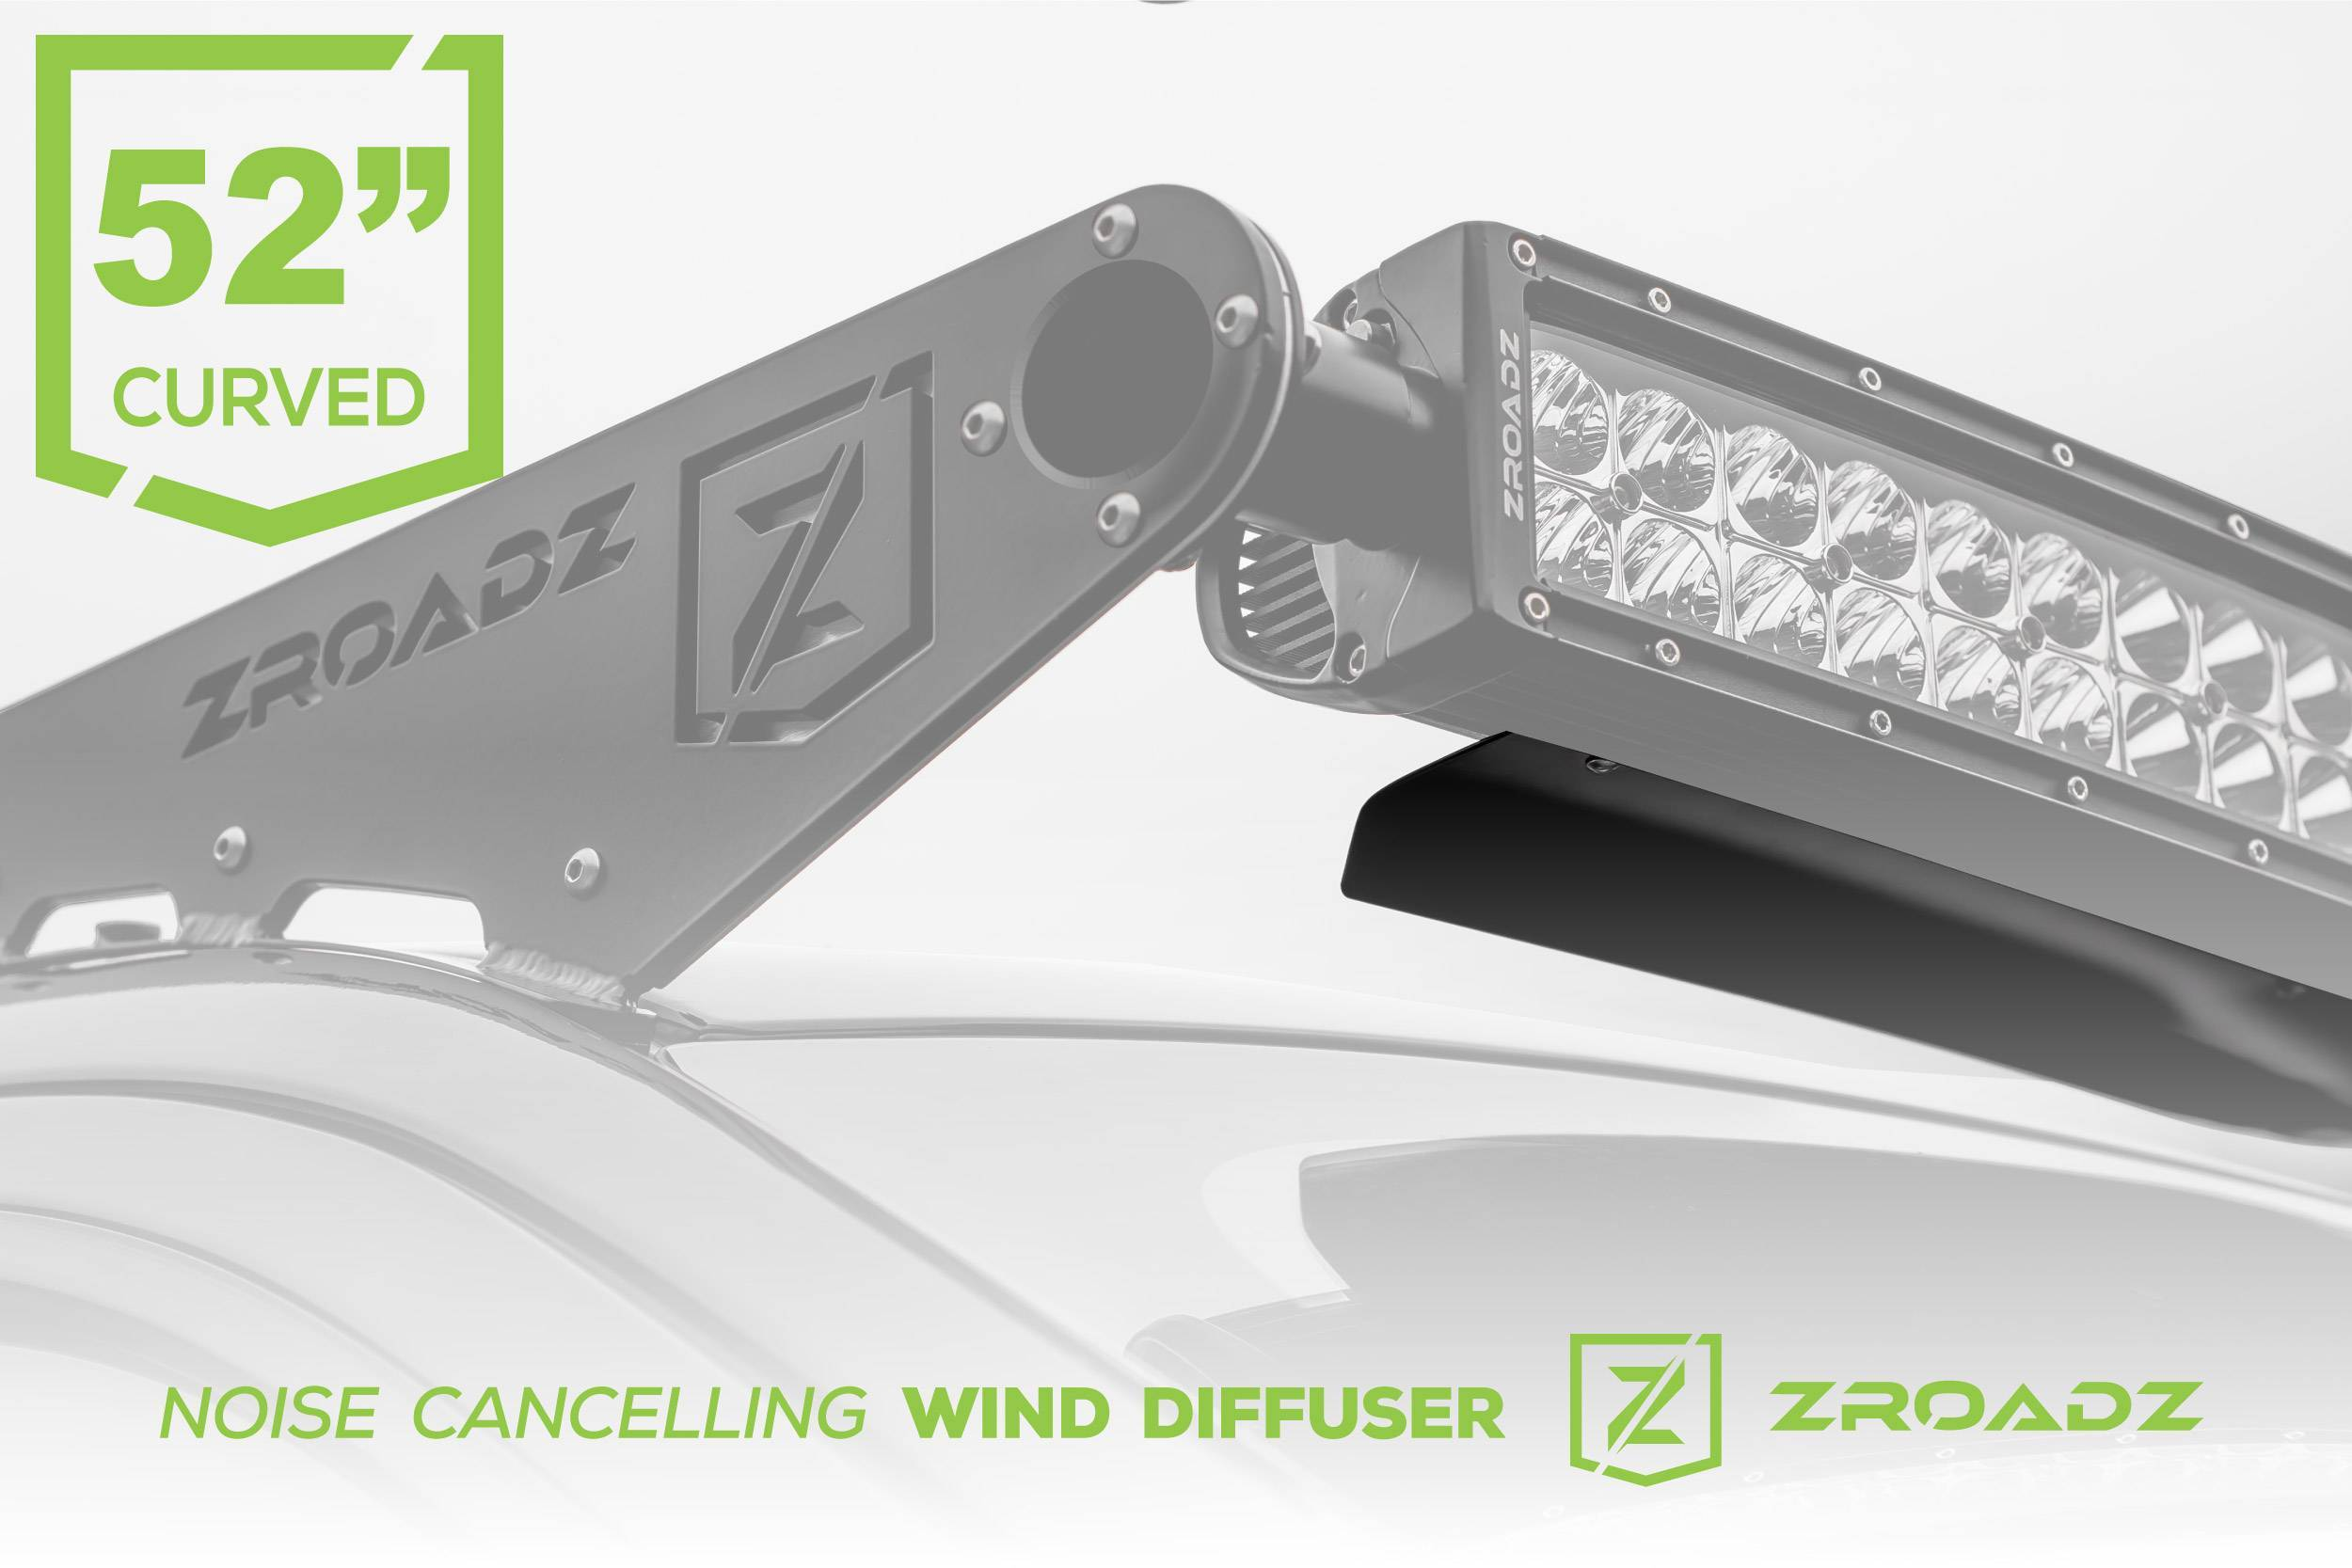 ZROADZ - Noise Cancelling Wind Diffuser for (1) 52 Inch Curved Double Row LED Light Bar - PN #Z330052C